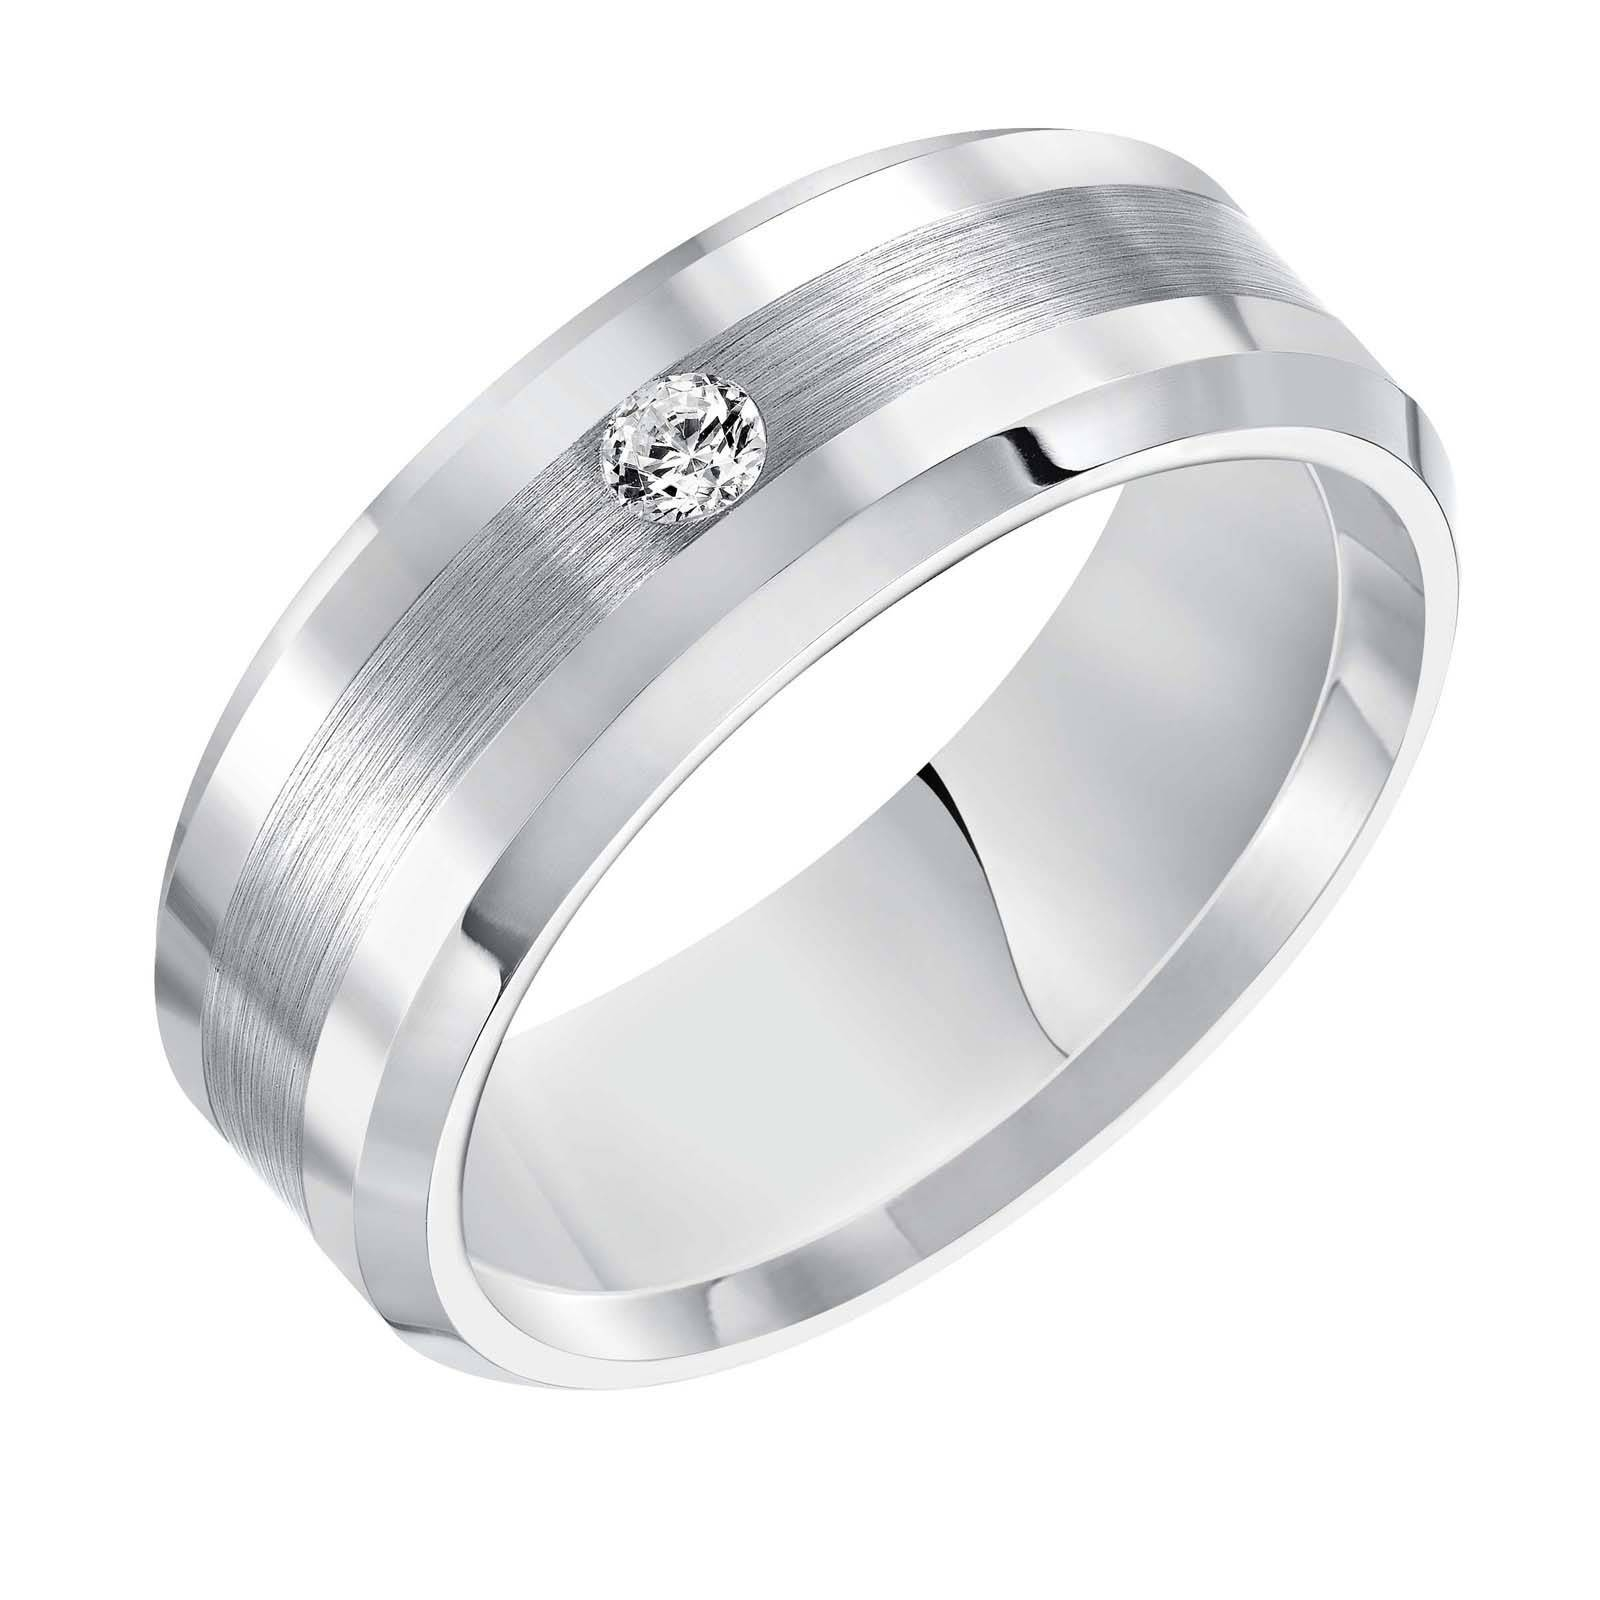 Overstock Mens Wedding Rings Luxury Sterling Silver Wedding Bands Inside Overstock Womens Wedding Bands (View 9 of 15)